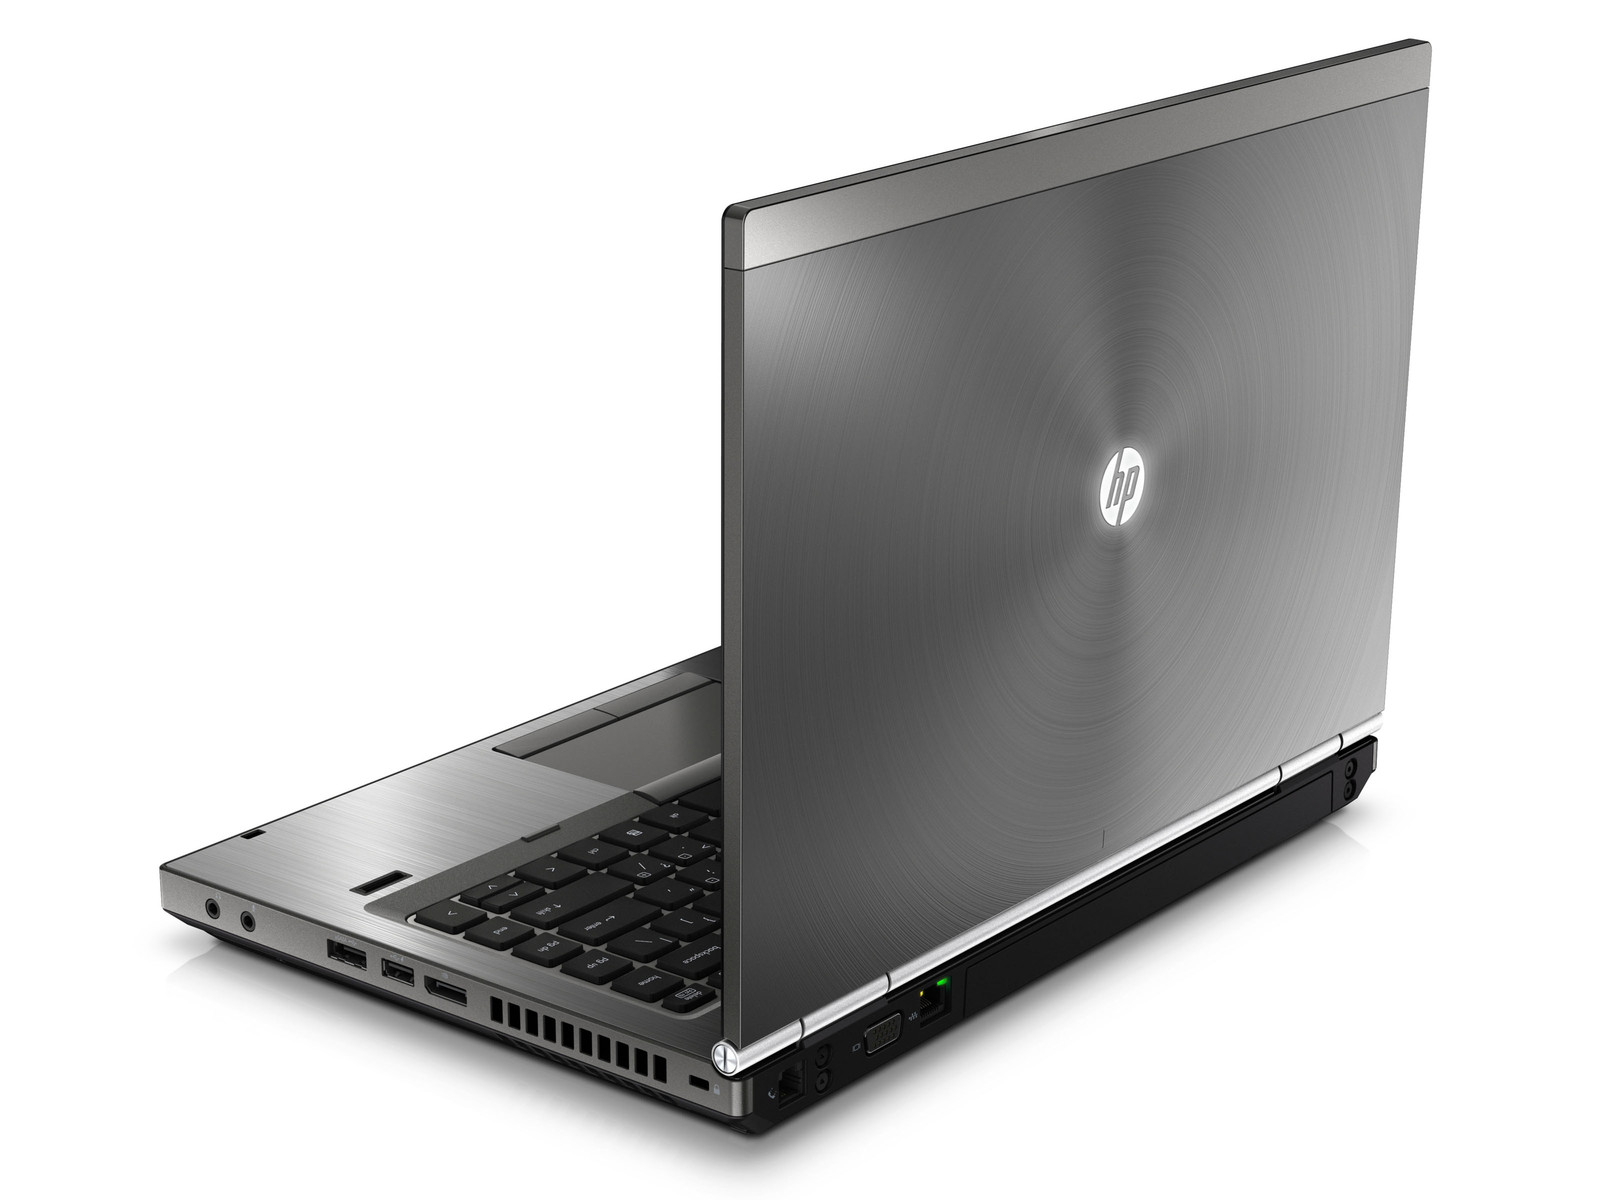 HP EliteBook 8440P I5 RAM 4GB HDD 250 GB